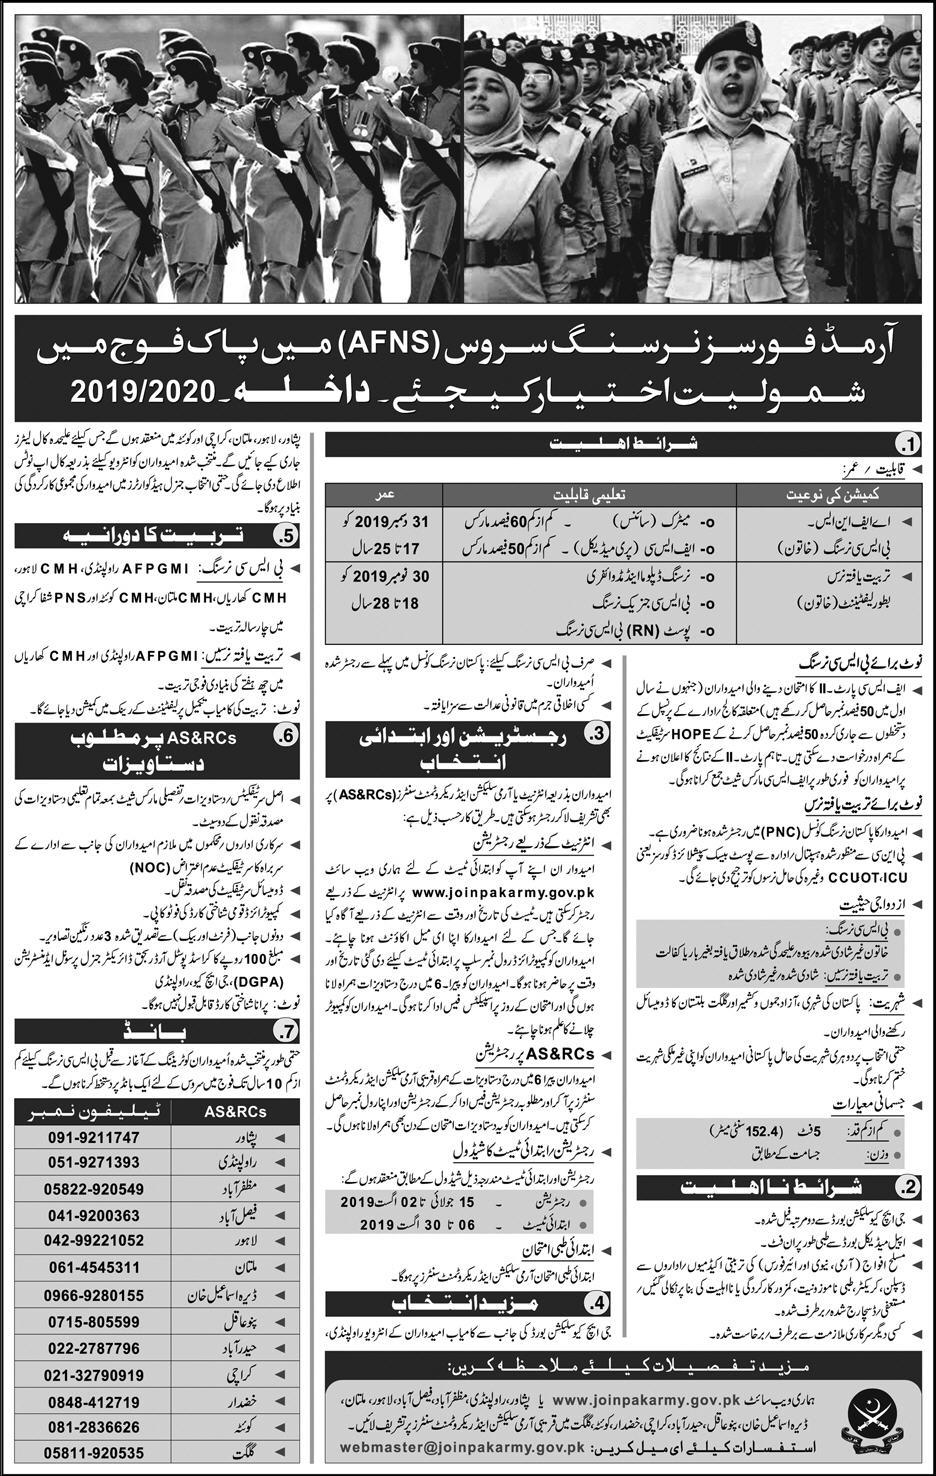 Pak army jobs 2019 - Join pak Army as nursing